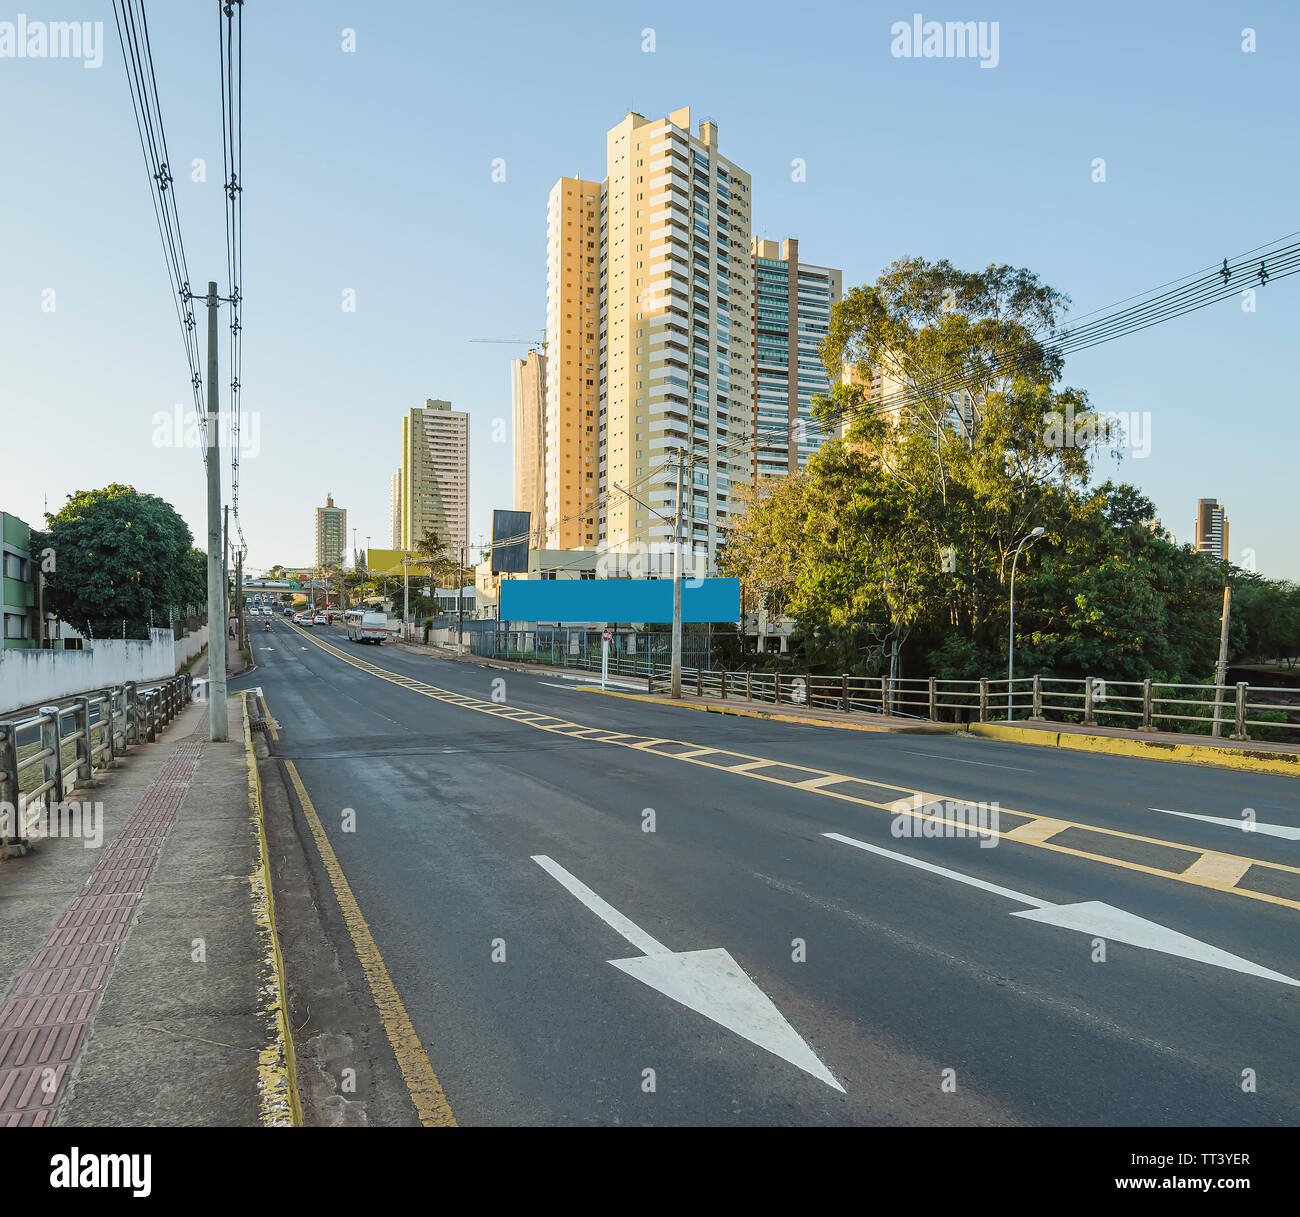 Brazilian large avenue with directional arrows on the street. Electric poles and few buildings on background. Ceara Avenue at the capital city, Campo Stock Photo